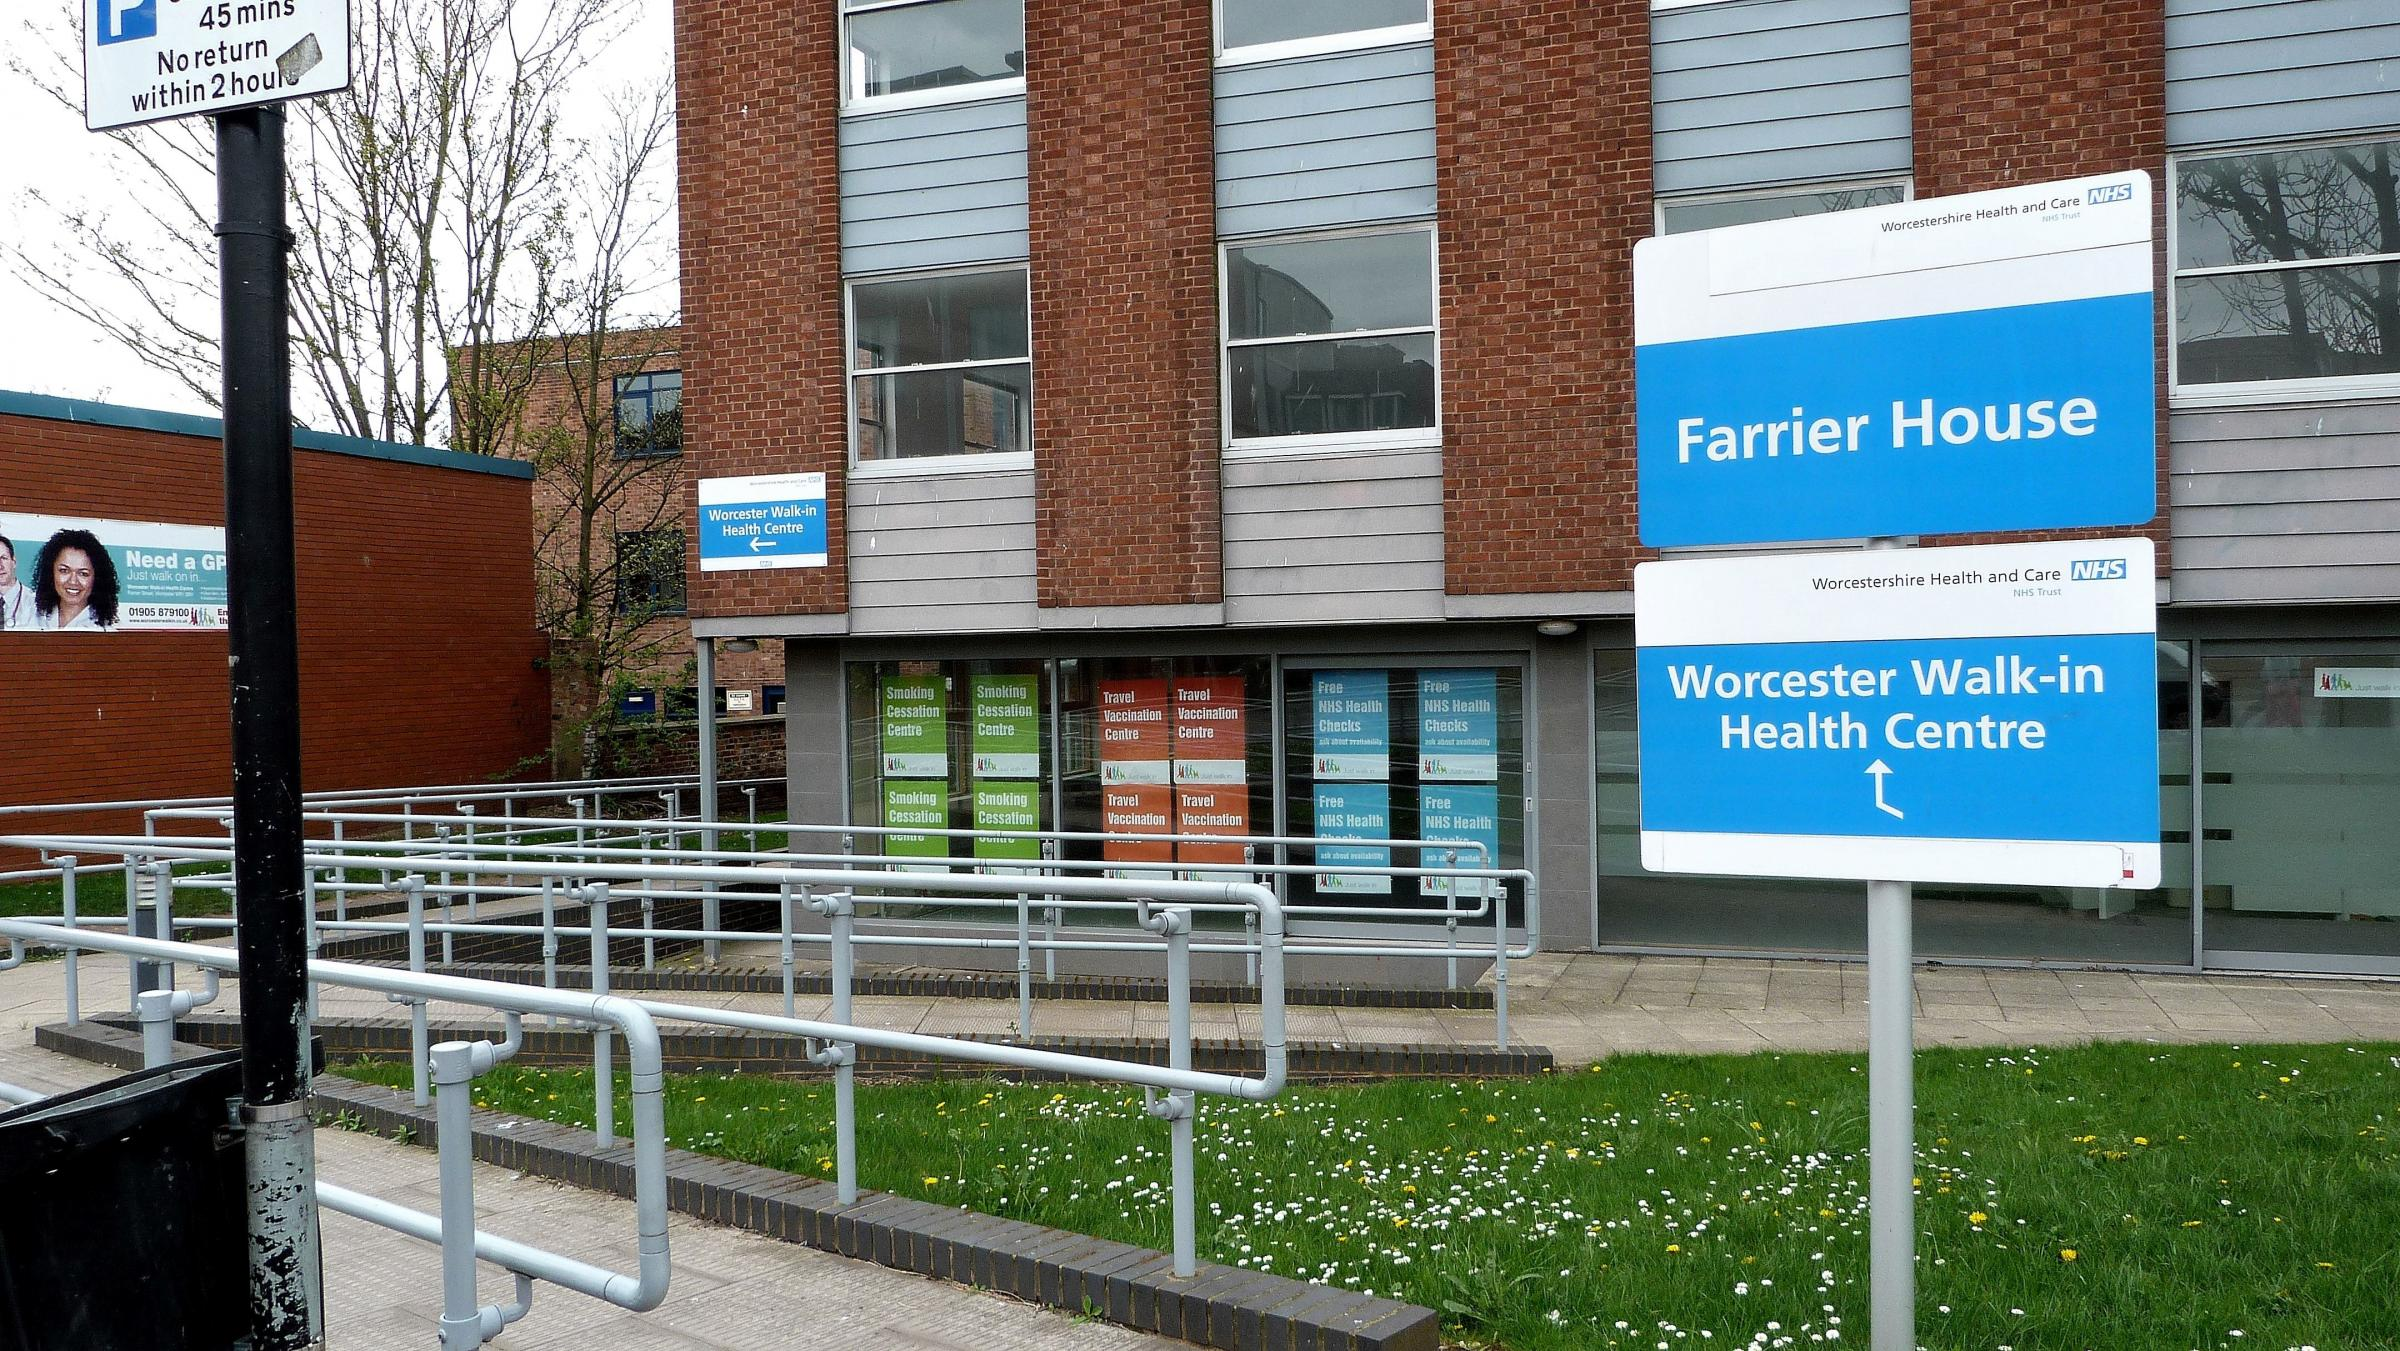 The Worcester Walk-In Health Centre in Farrier Street